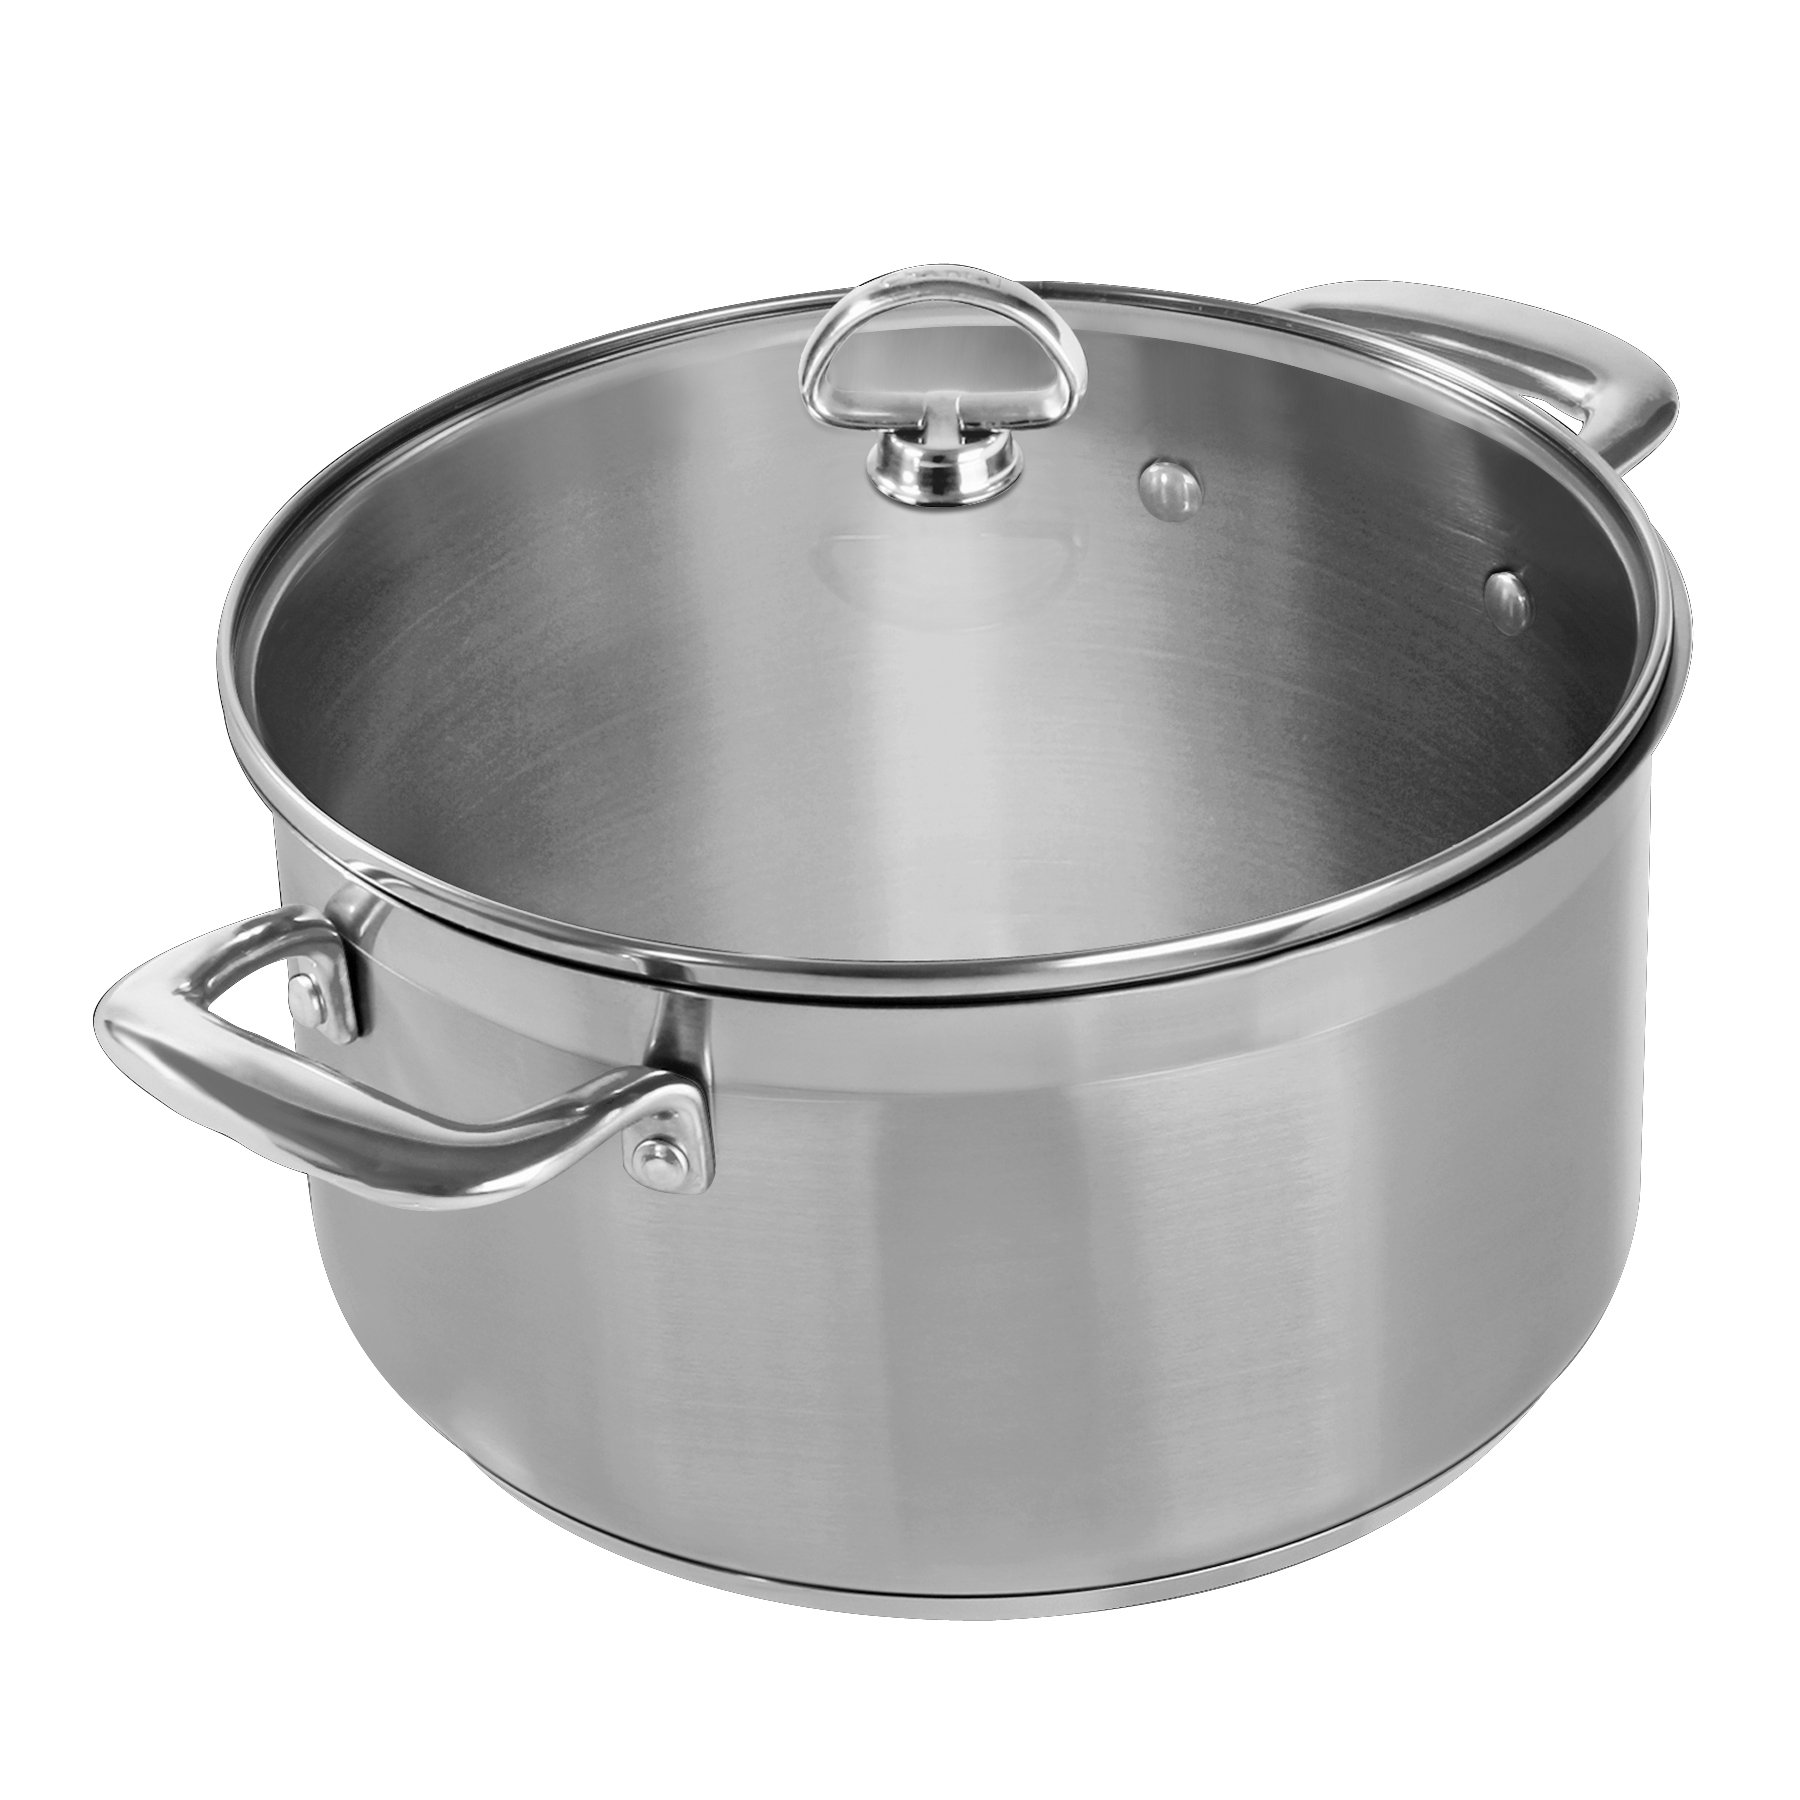 Chantal SLIN32-240 Induction 21 Steel Casserole with Glass Tempered Lid (6-Quart) by Chantal (Image #2)